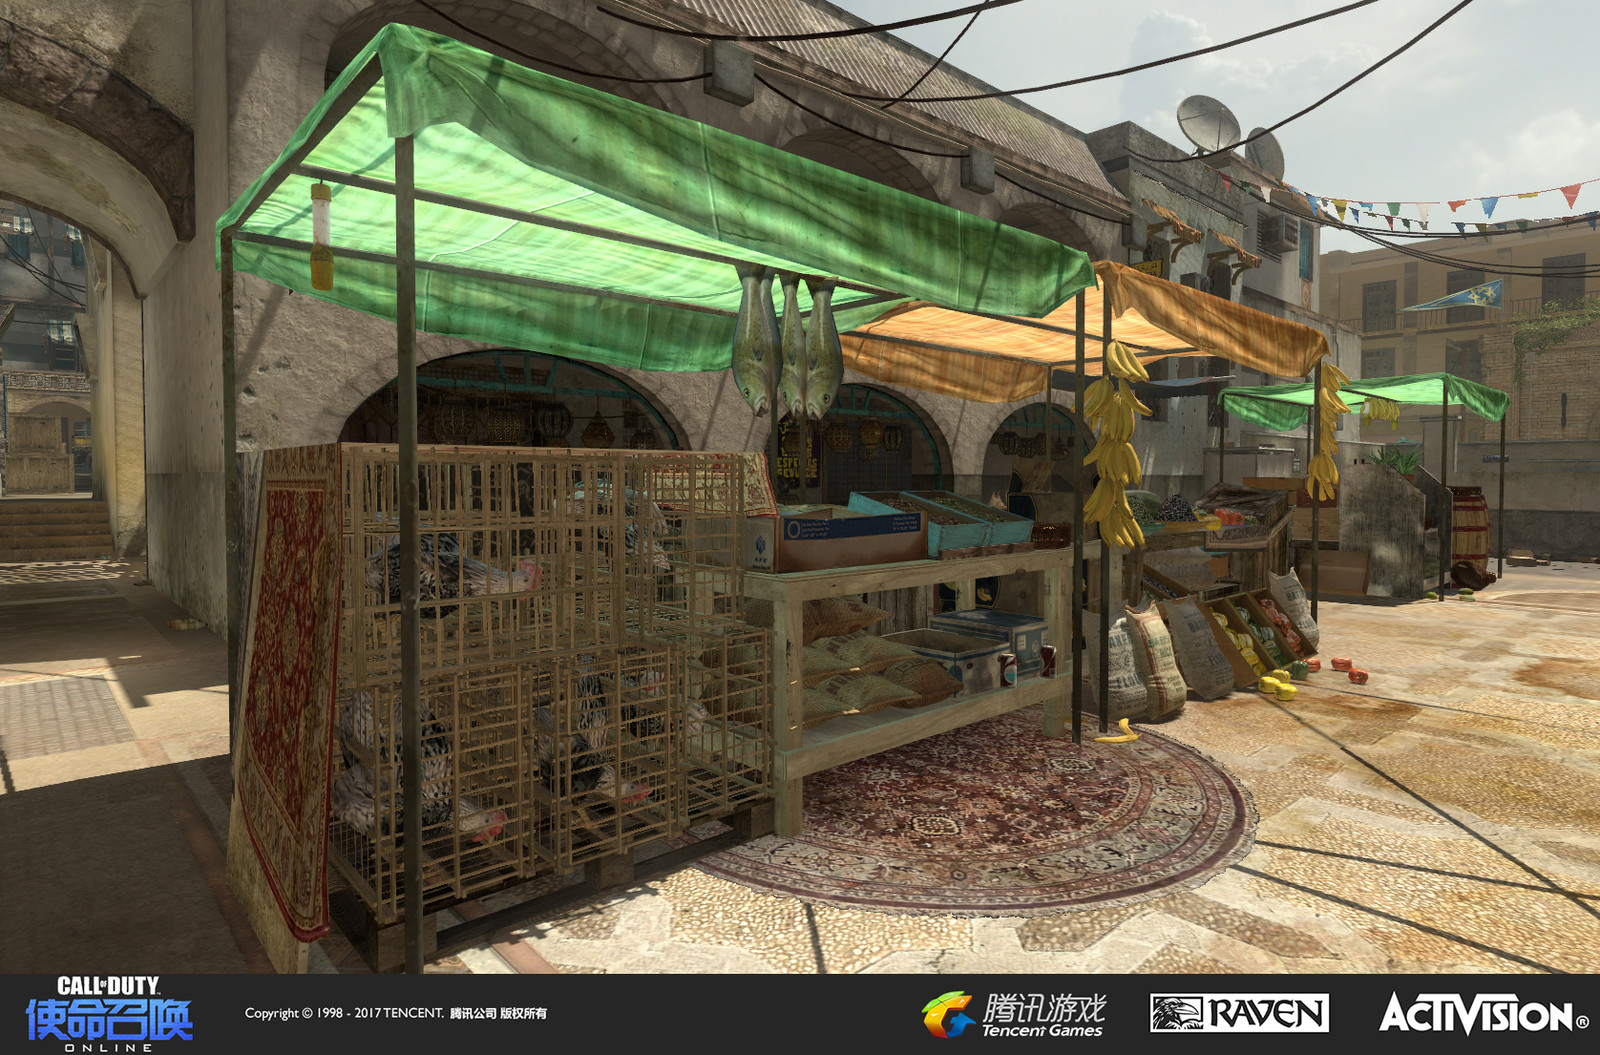 Seatown: A re-imagined multiplayer map originally appearing in Modern Warfare 3. I created the set dress and terrain here. One of our Shanghai artists created the cloth tops for the market stalls.